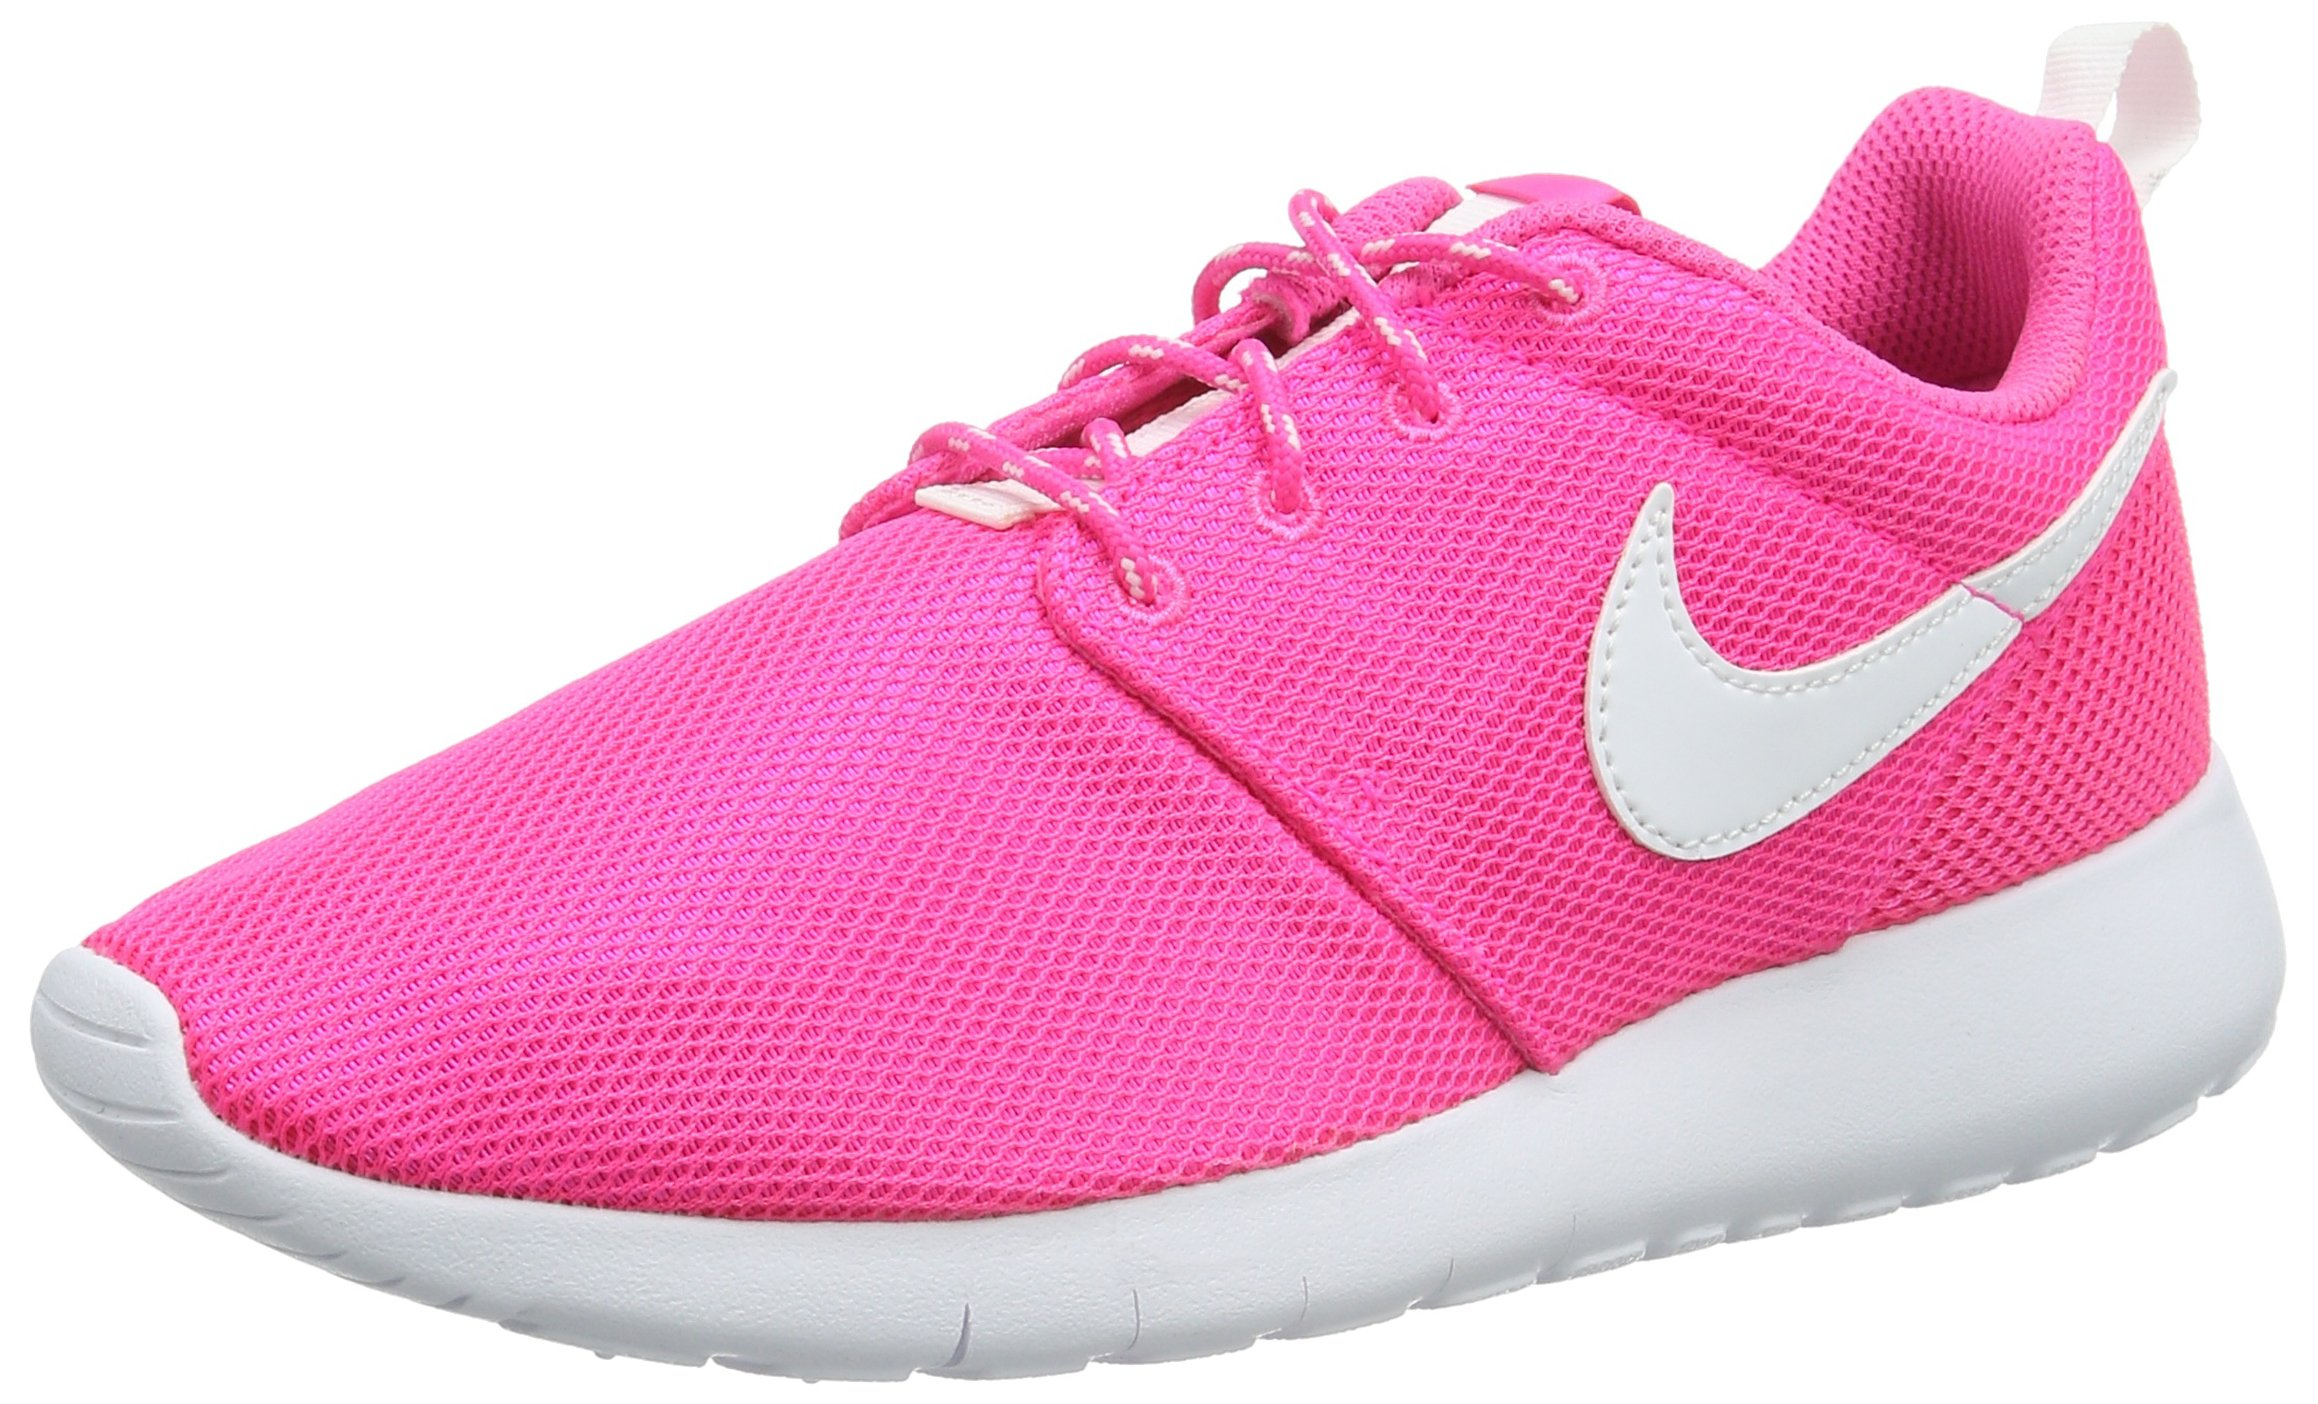 1e15503244c3b Galleon - Nike Youth Roshe One Girls Running Shoes Pink Blast White  599729-611 Size 4.5